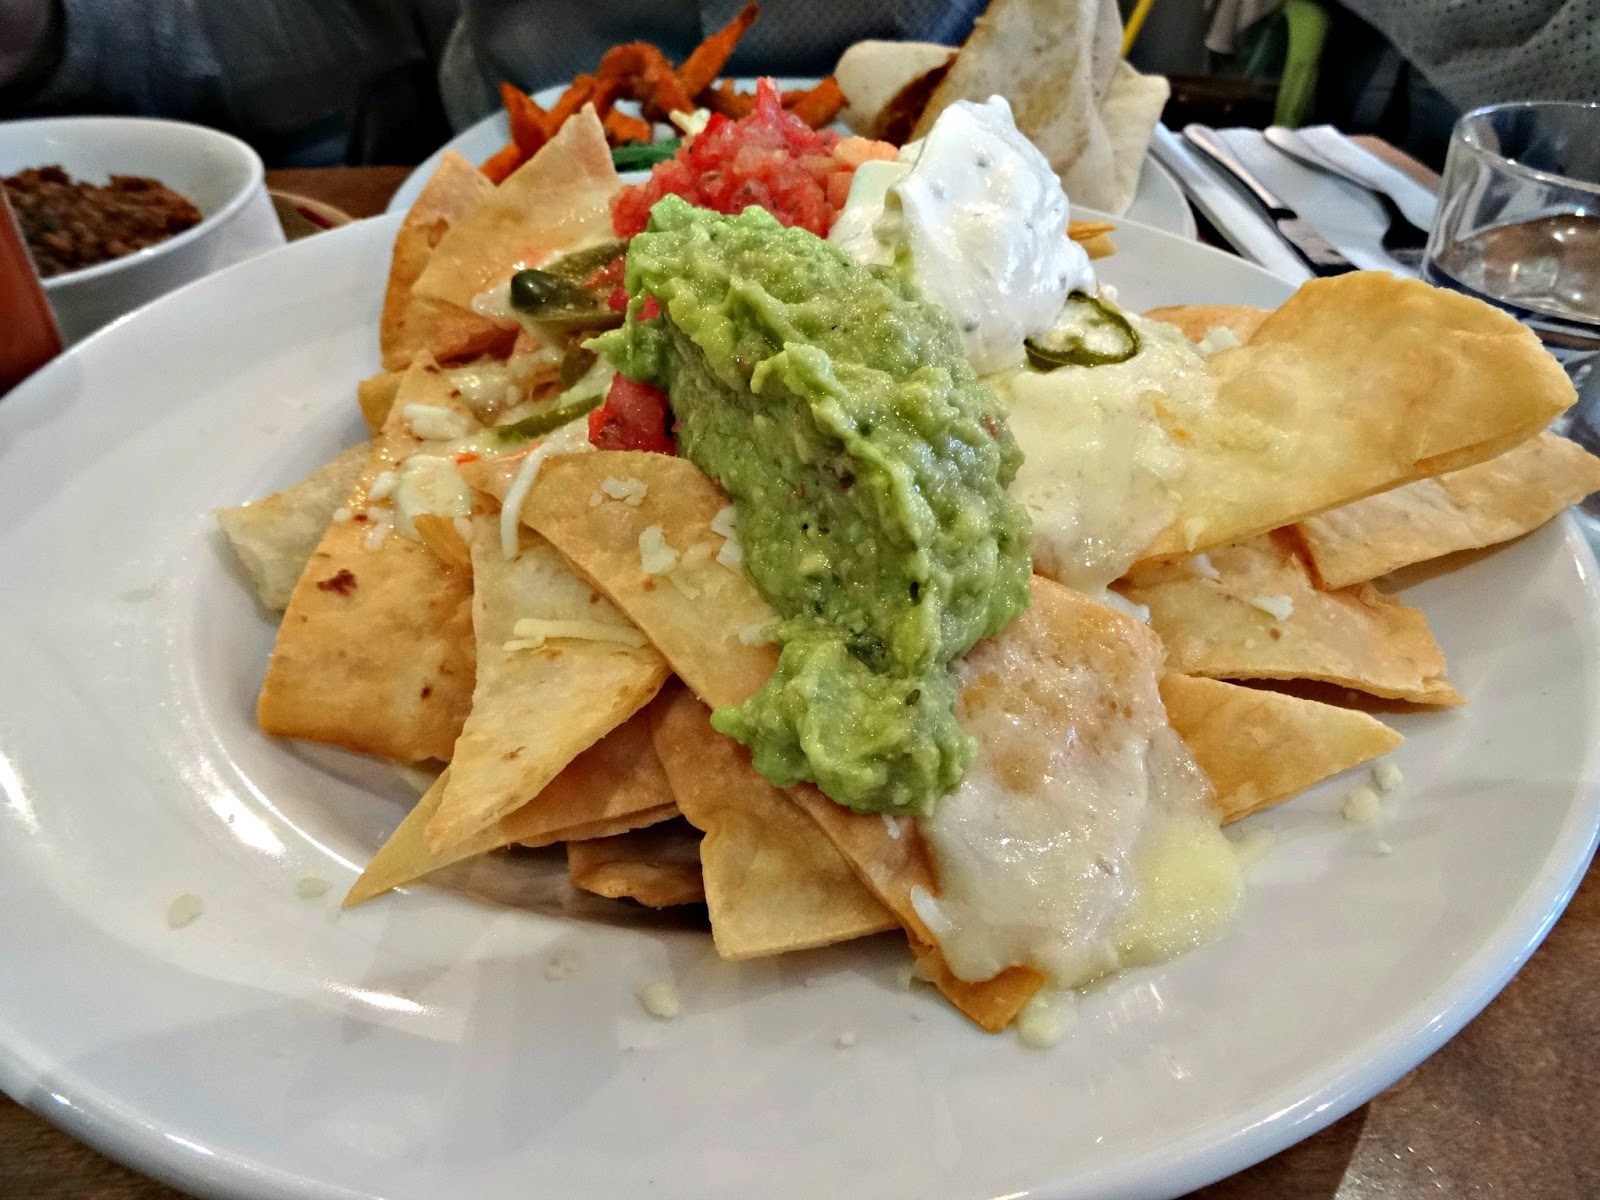 nachos served at bodega birmingham